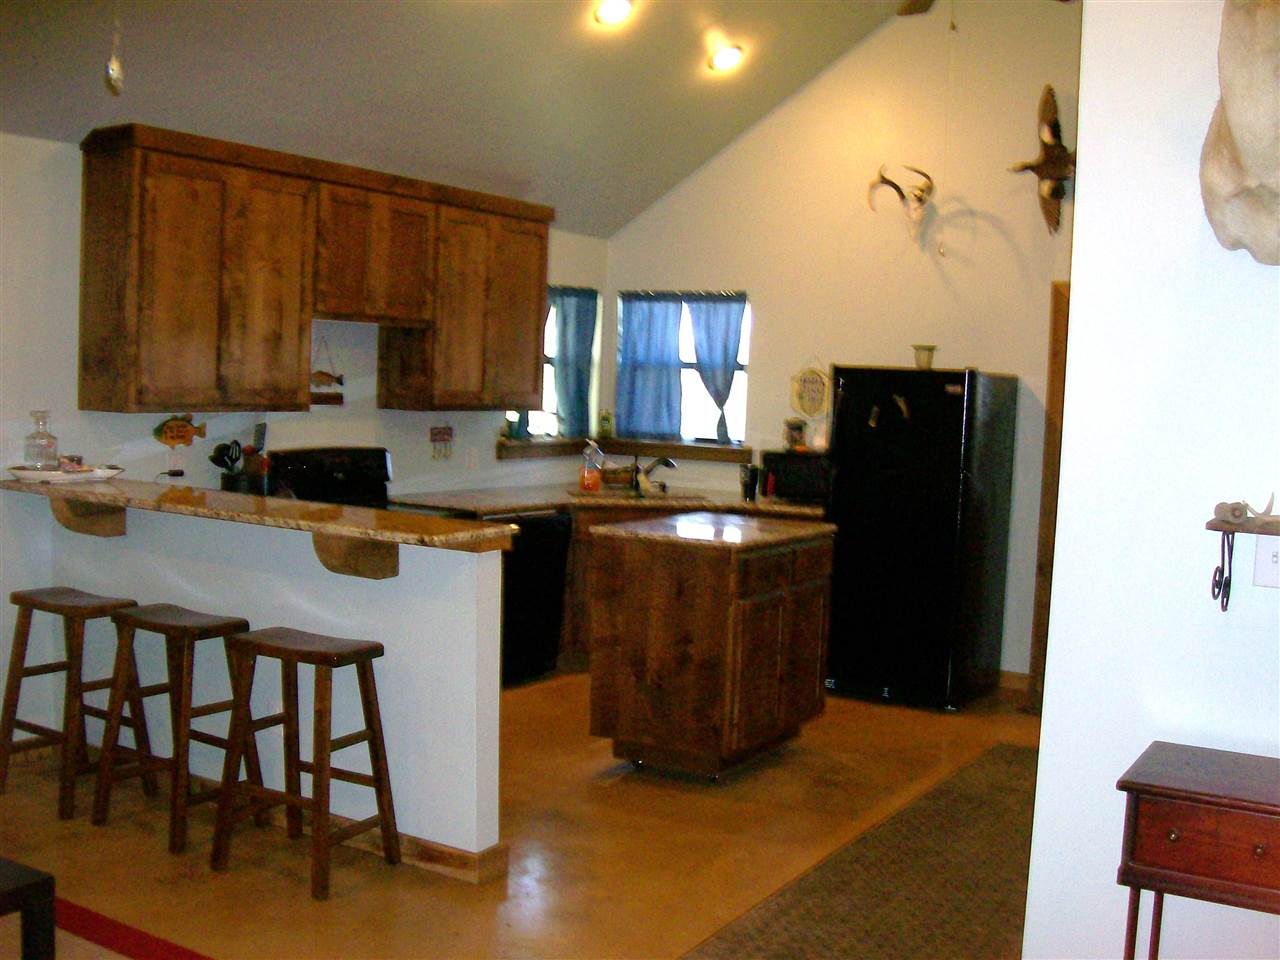 Additional photo for property listing at 301 South Street  Tow, Texas 78672 United States